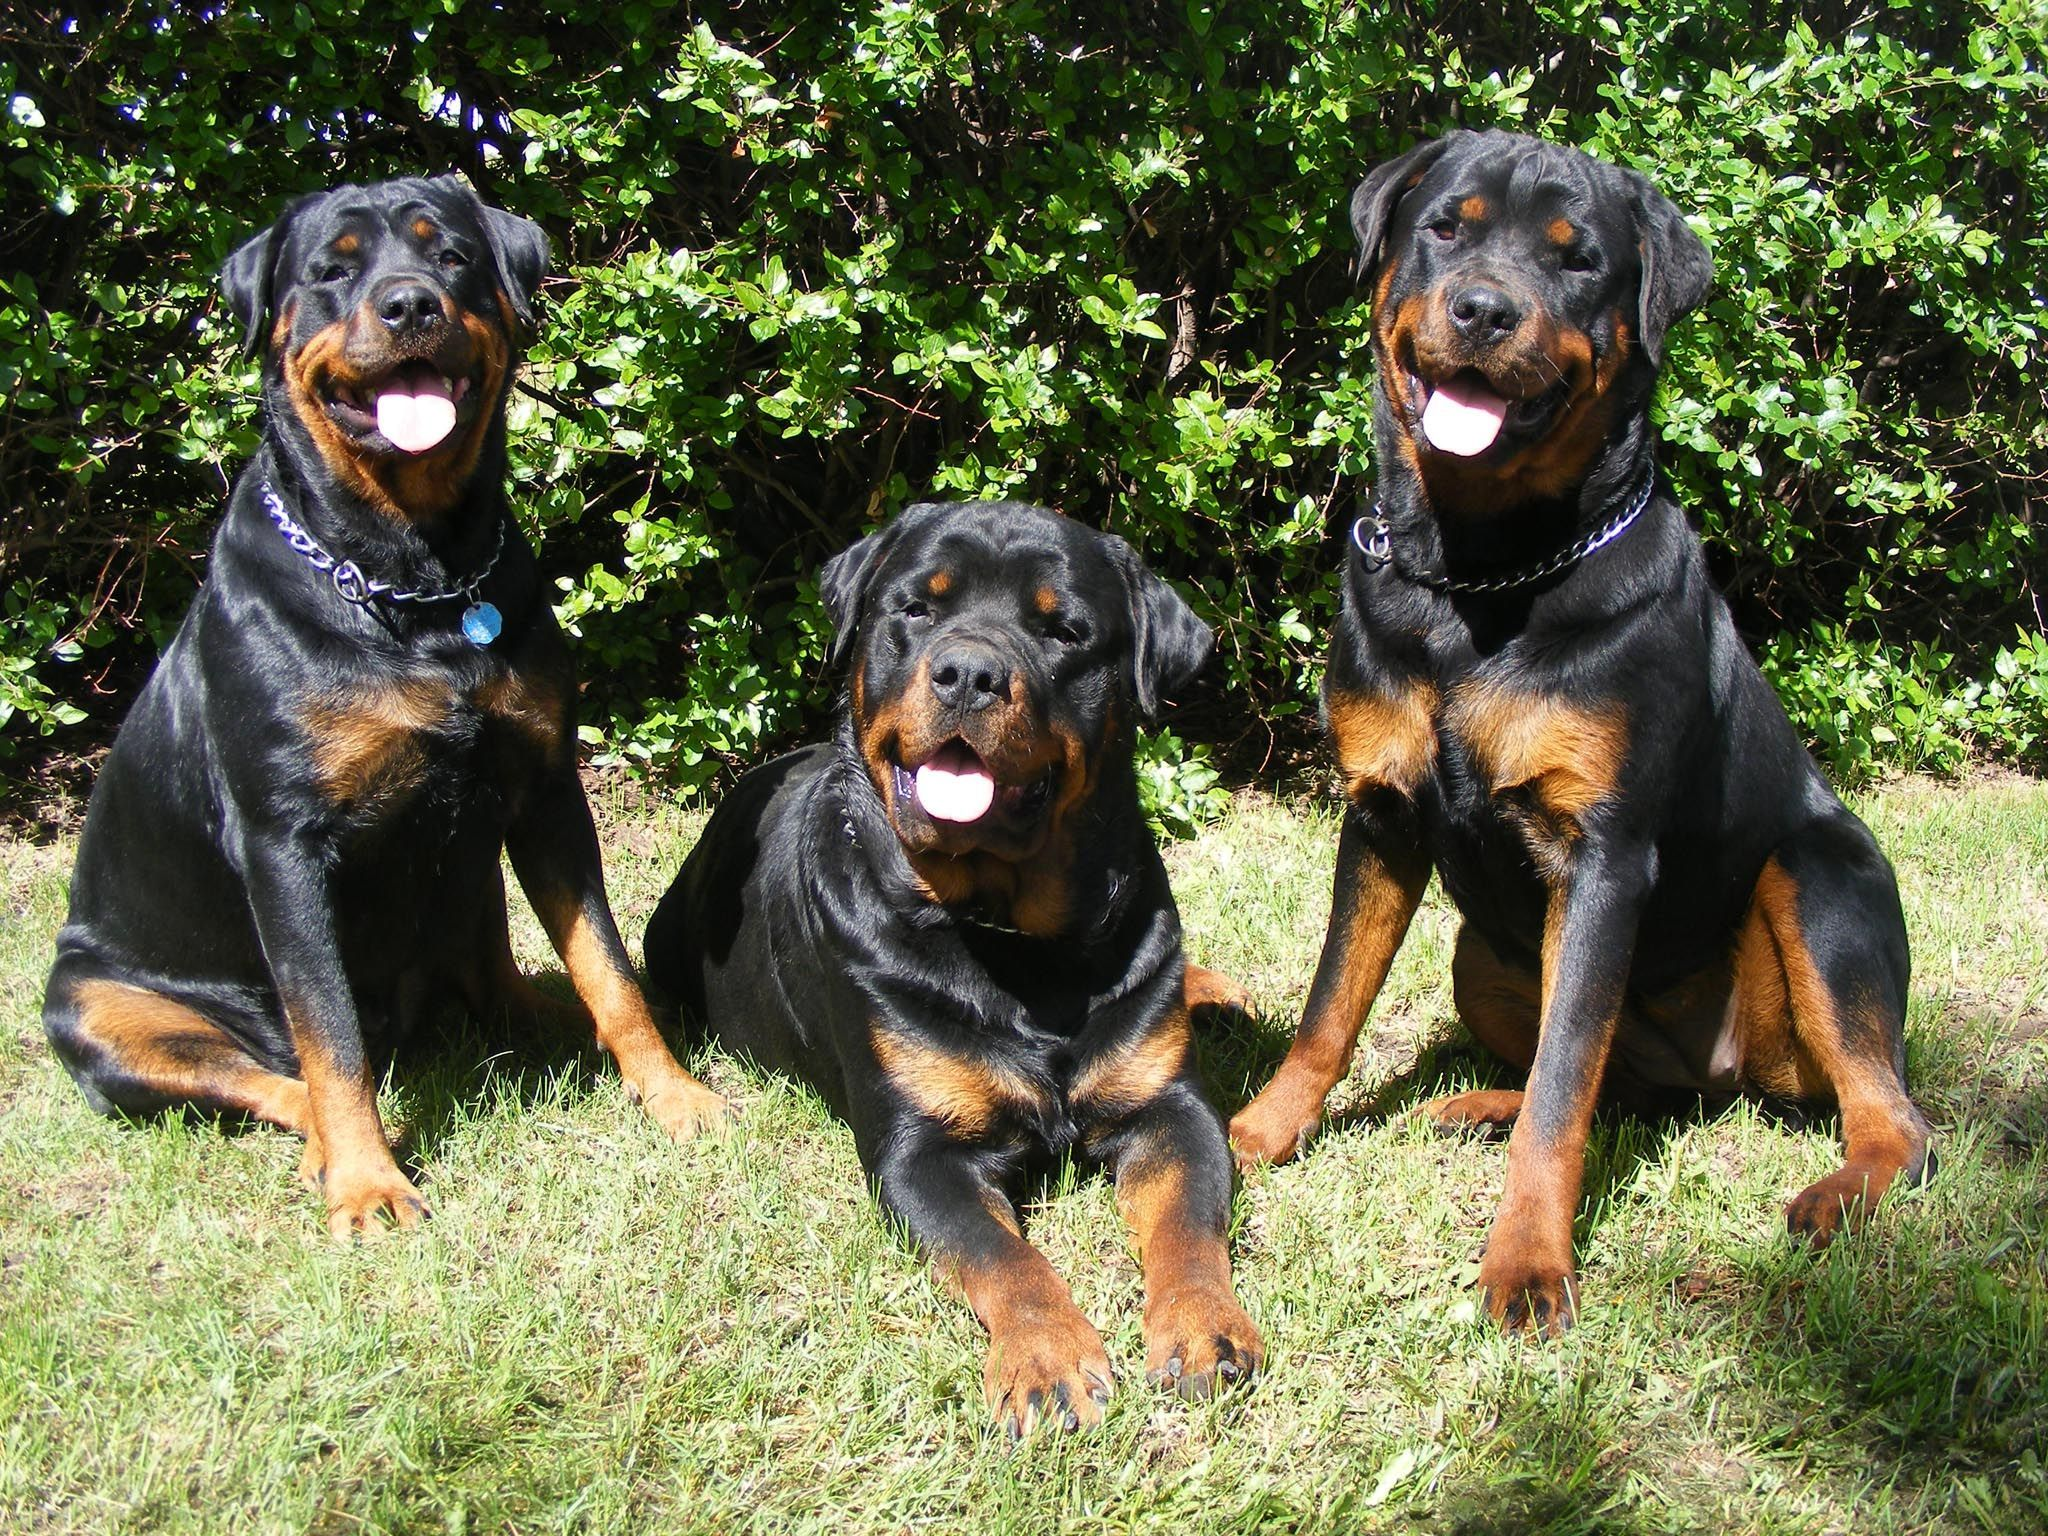 Rottweiler Dog Image Wallpaper Hd Desktop In 2020 Rottweiler Dog Rottweiler Rottweiler Pictures